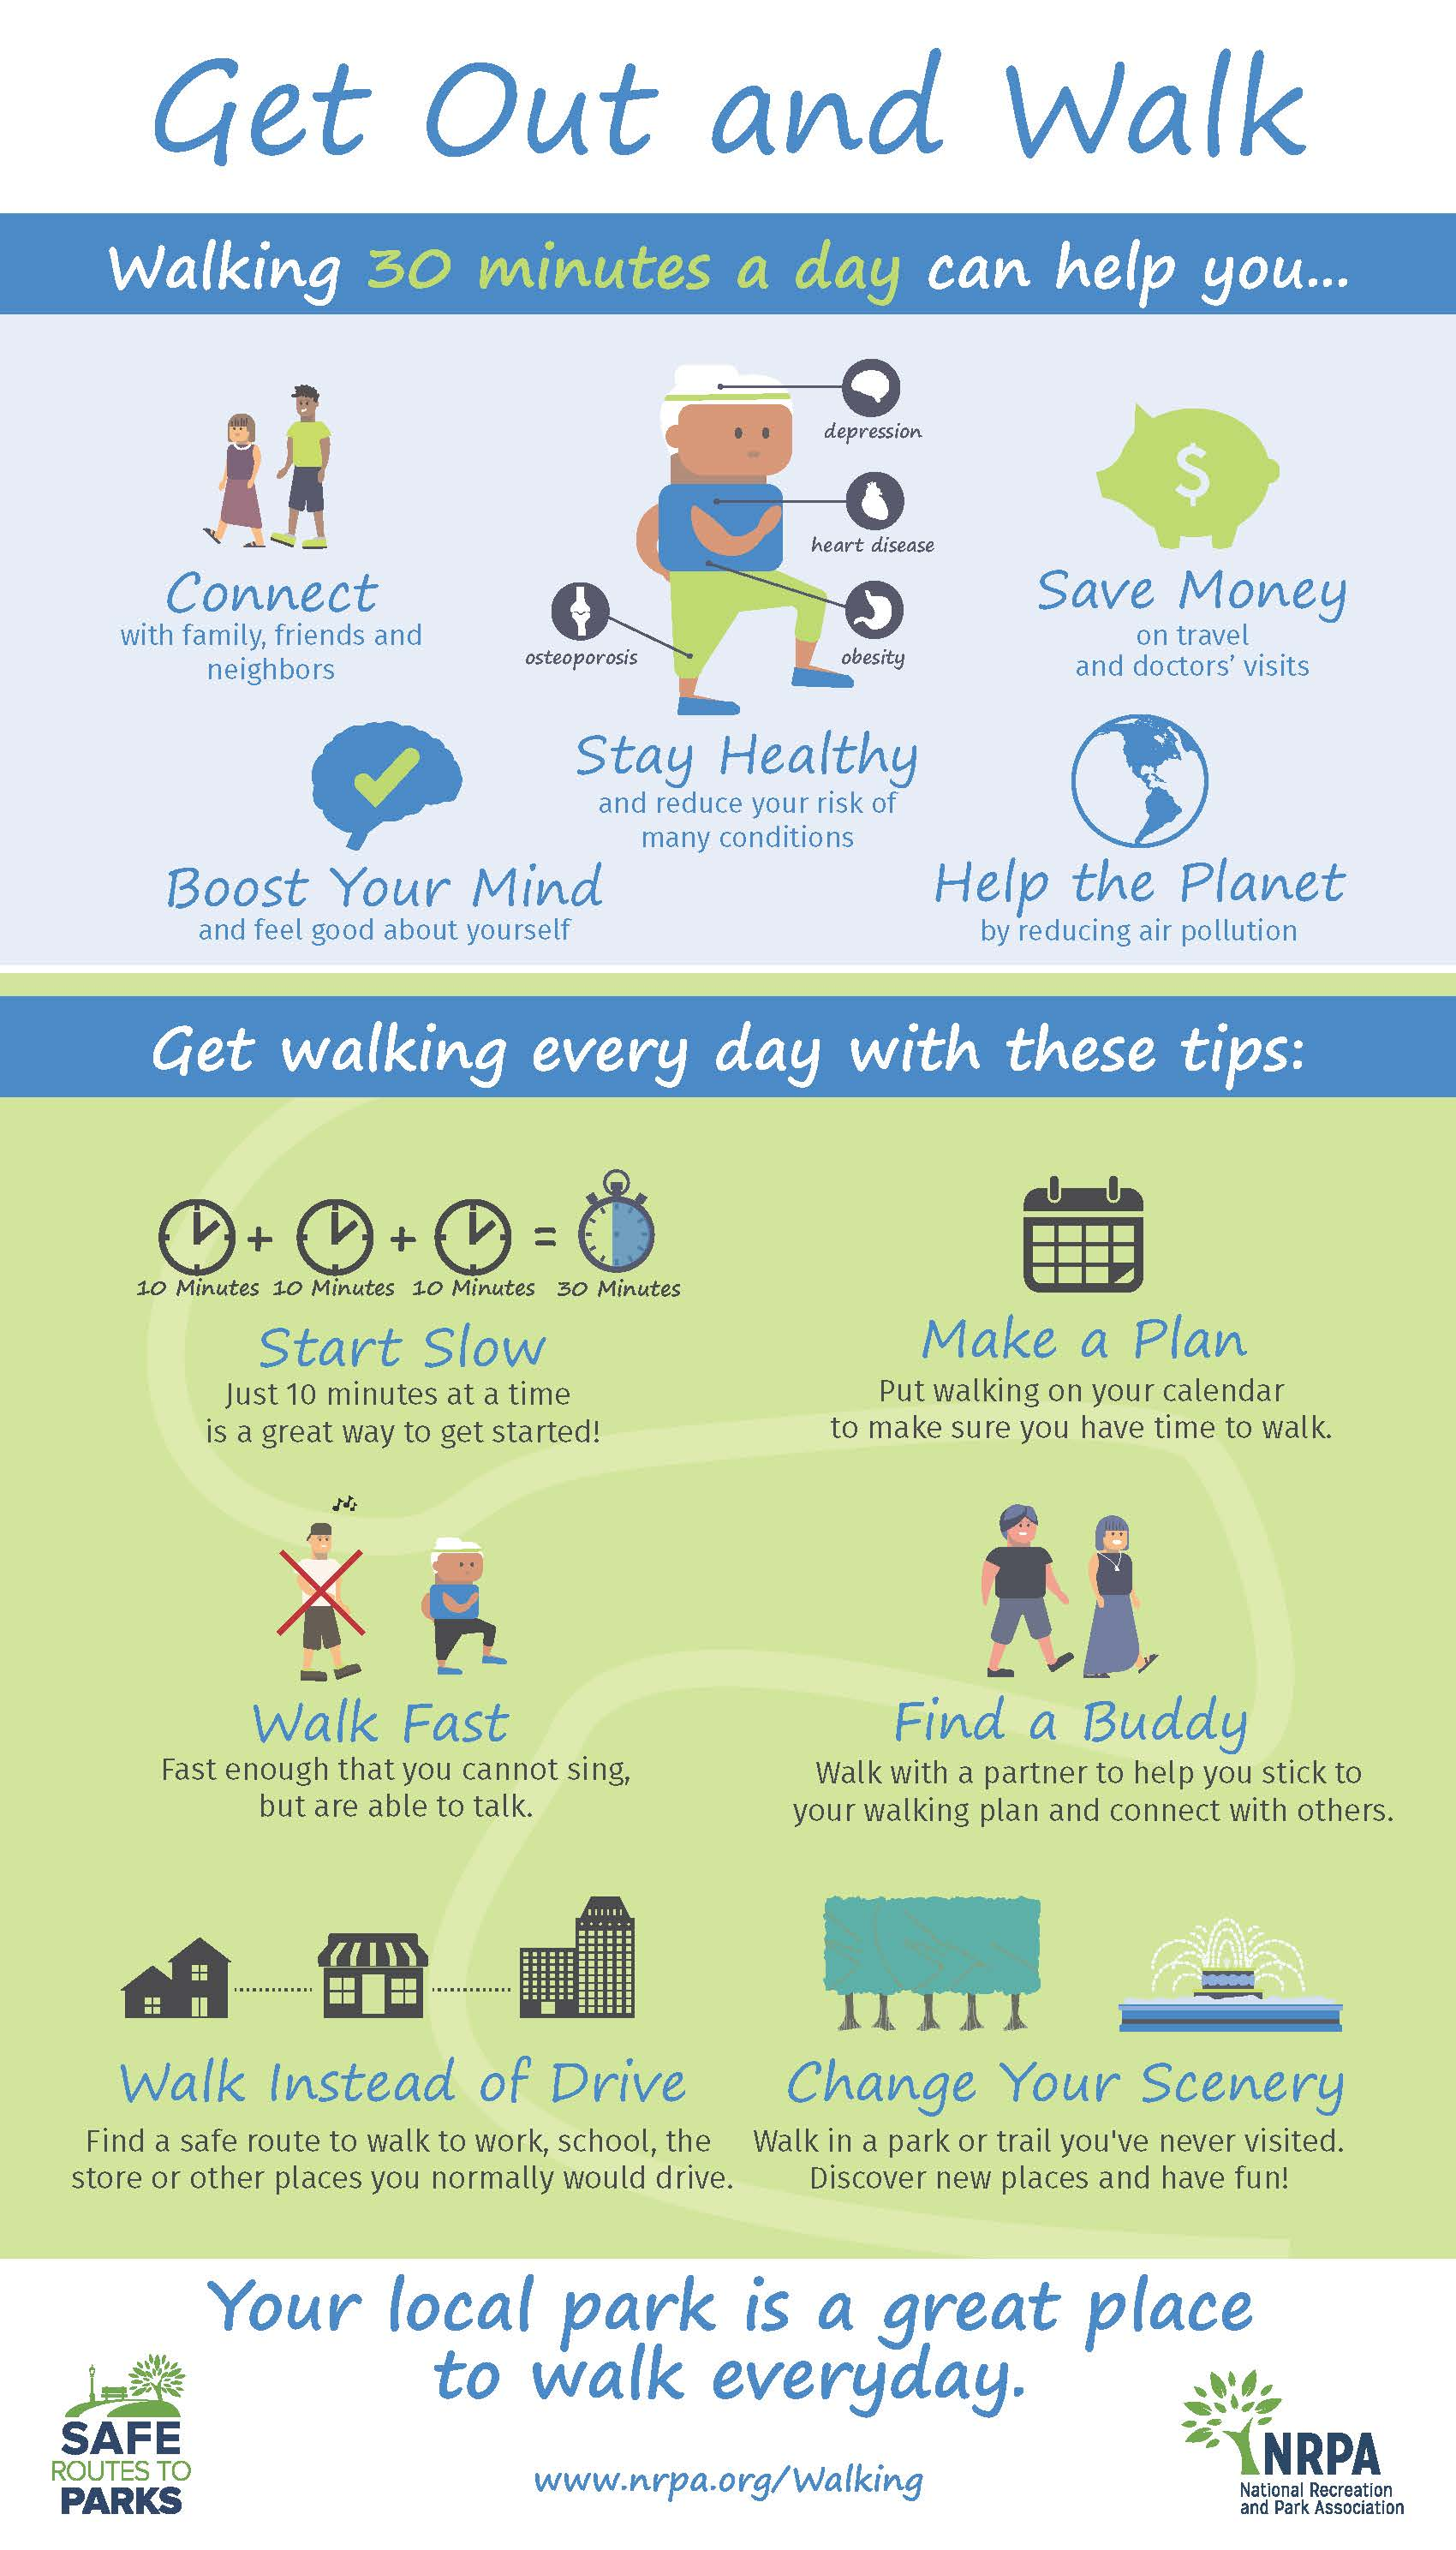 Get-Out-and-Walk-Infographic